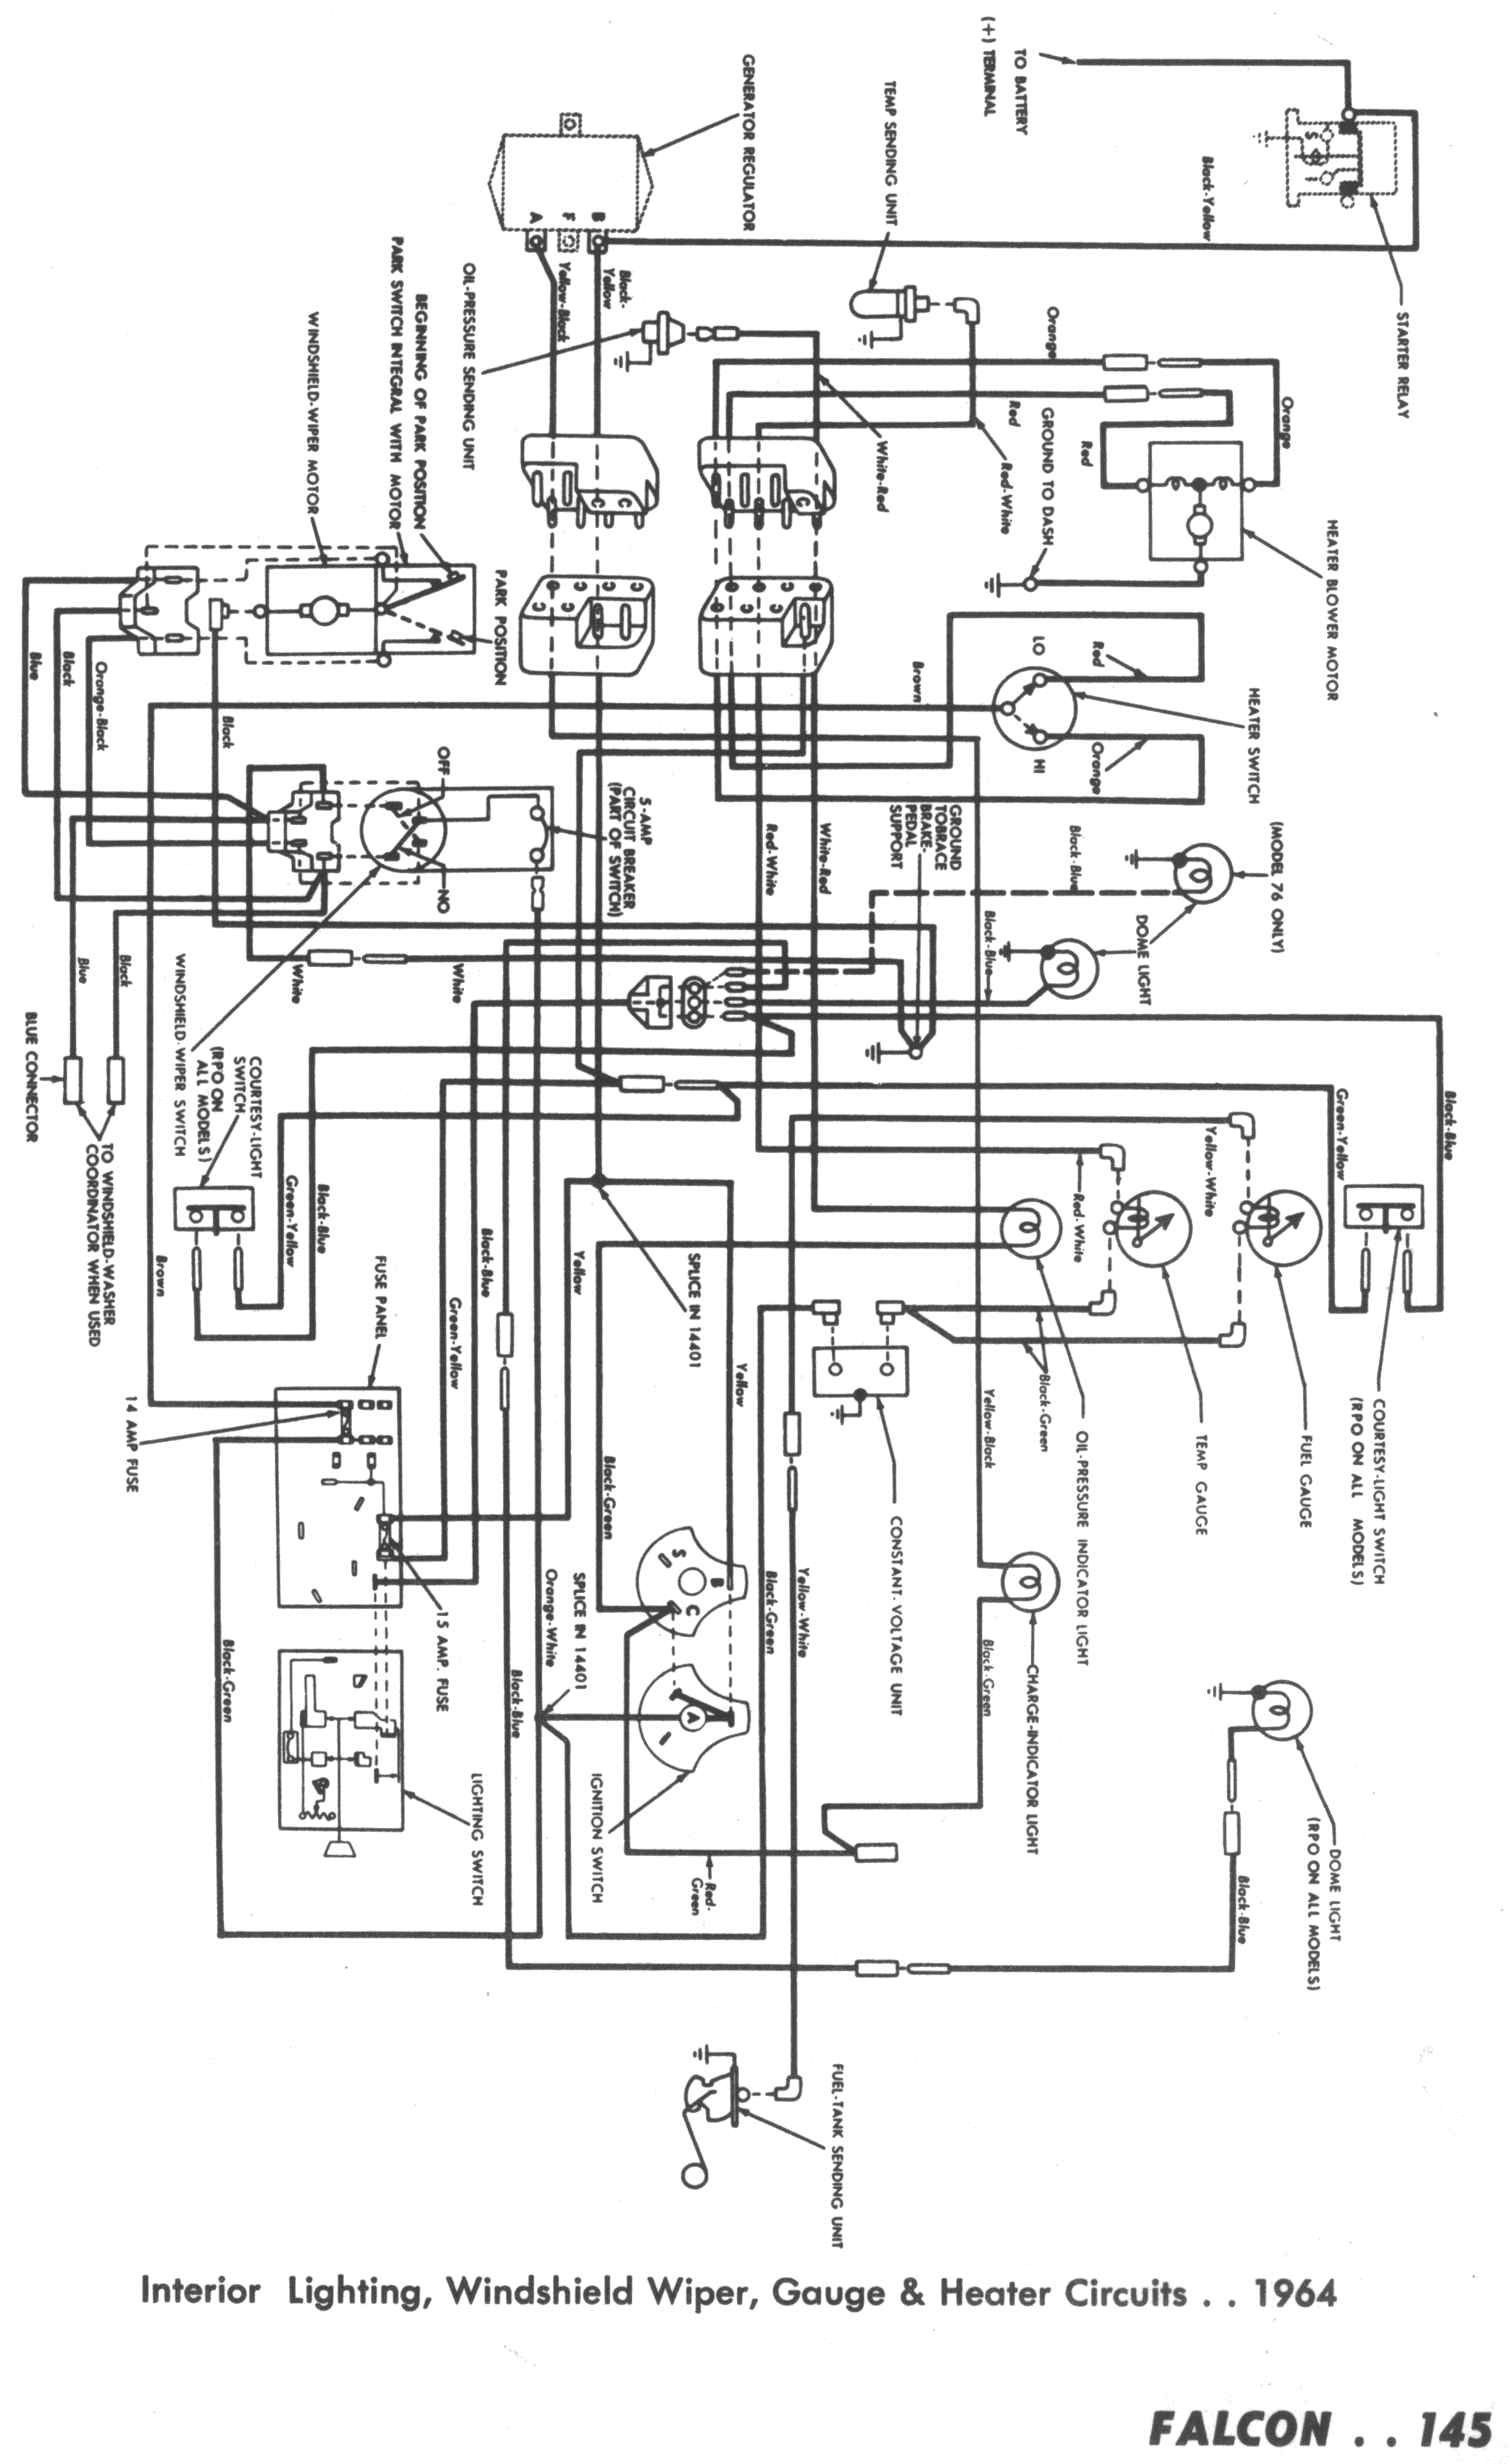 Falcon Wiring Diagrams Half Switched Schematic Diagram Print Version 13mb